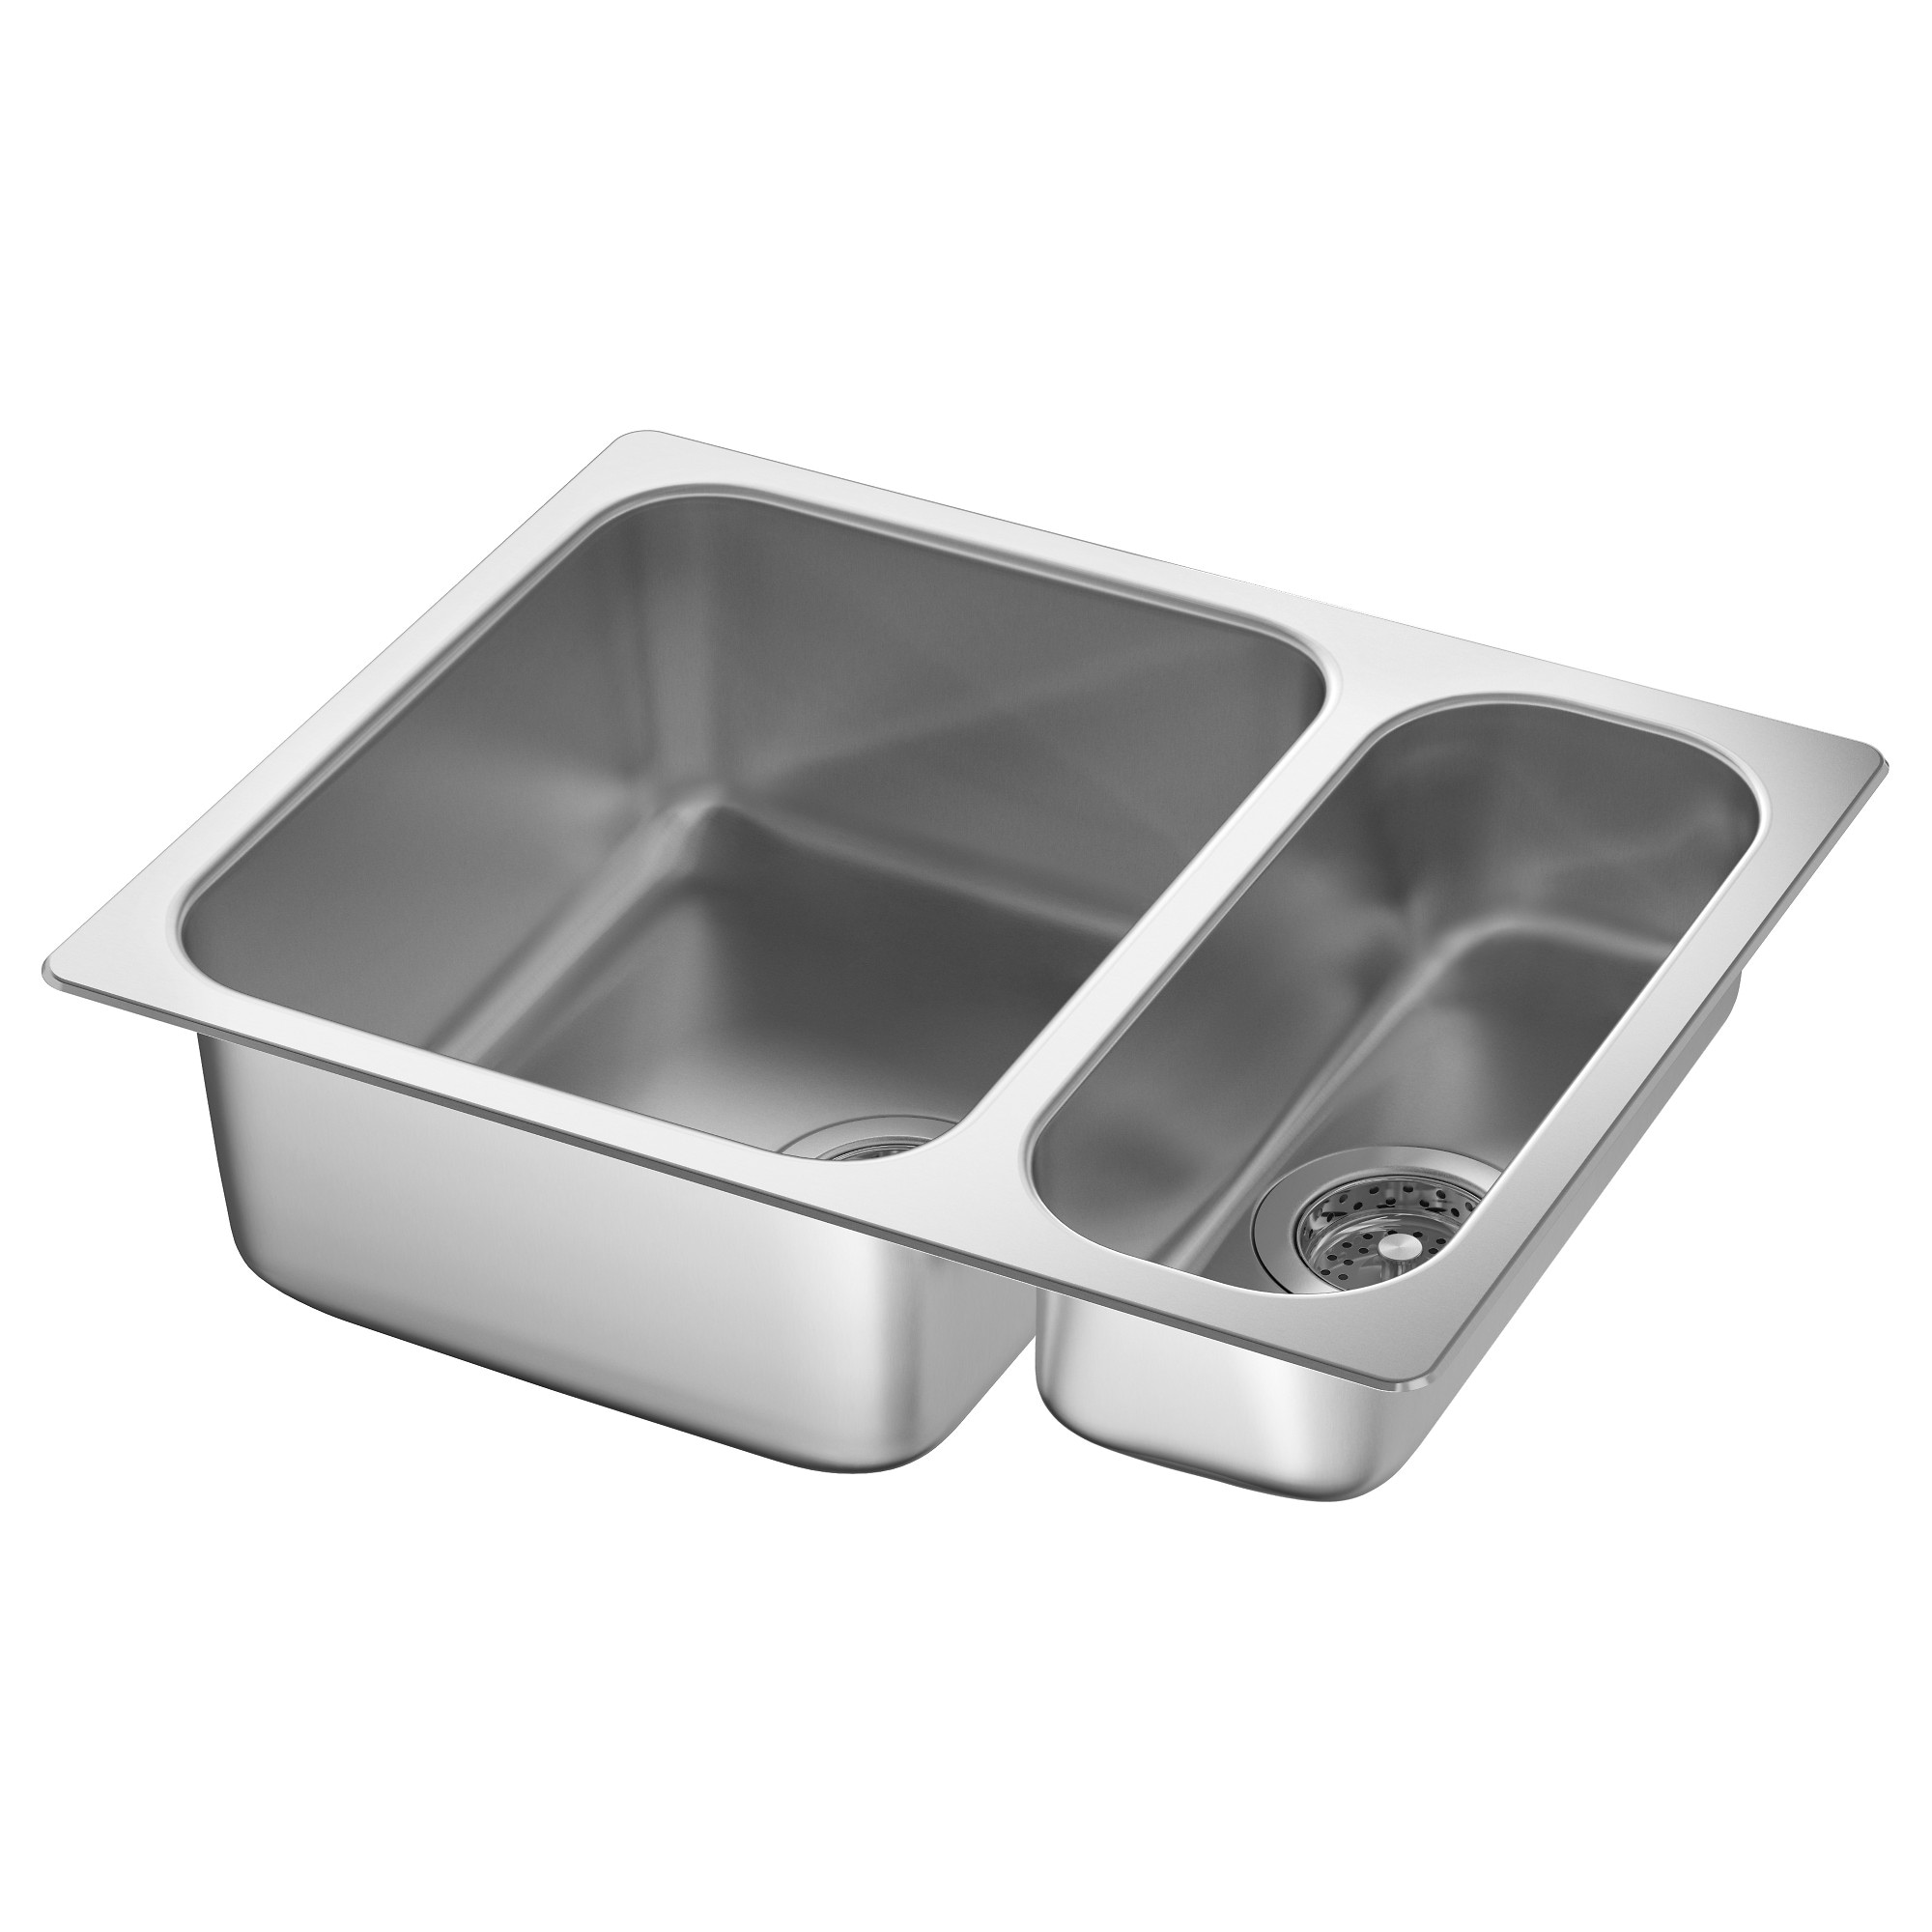 Hillesj N 1 1 2 Bowl Dual Mount Sink Stainless Steel Length 22 7